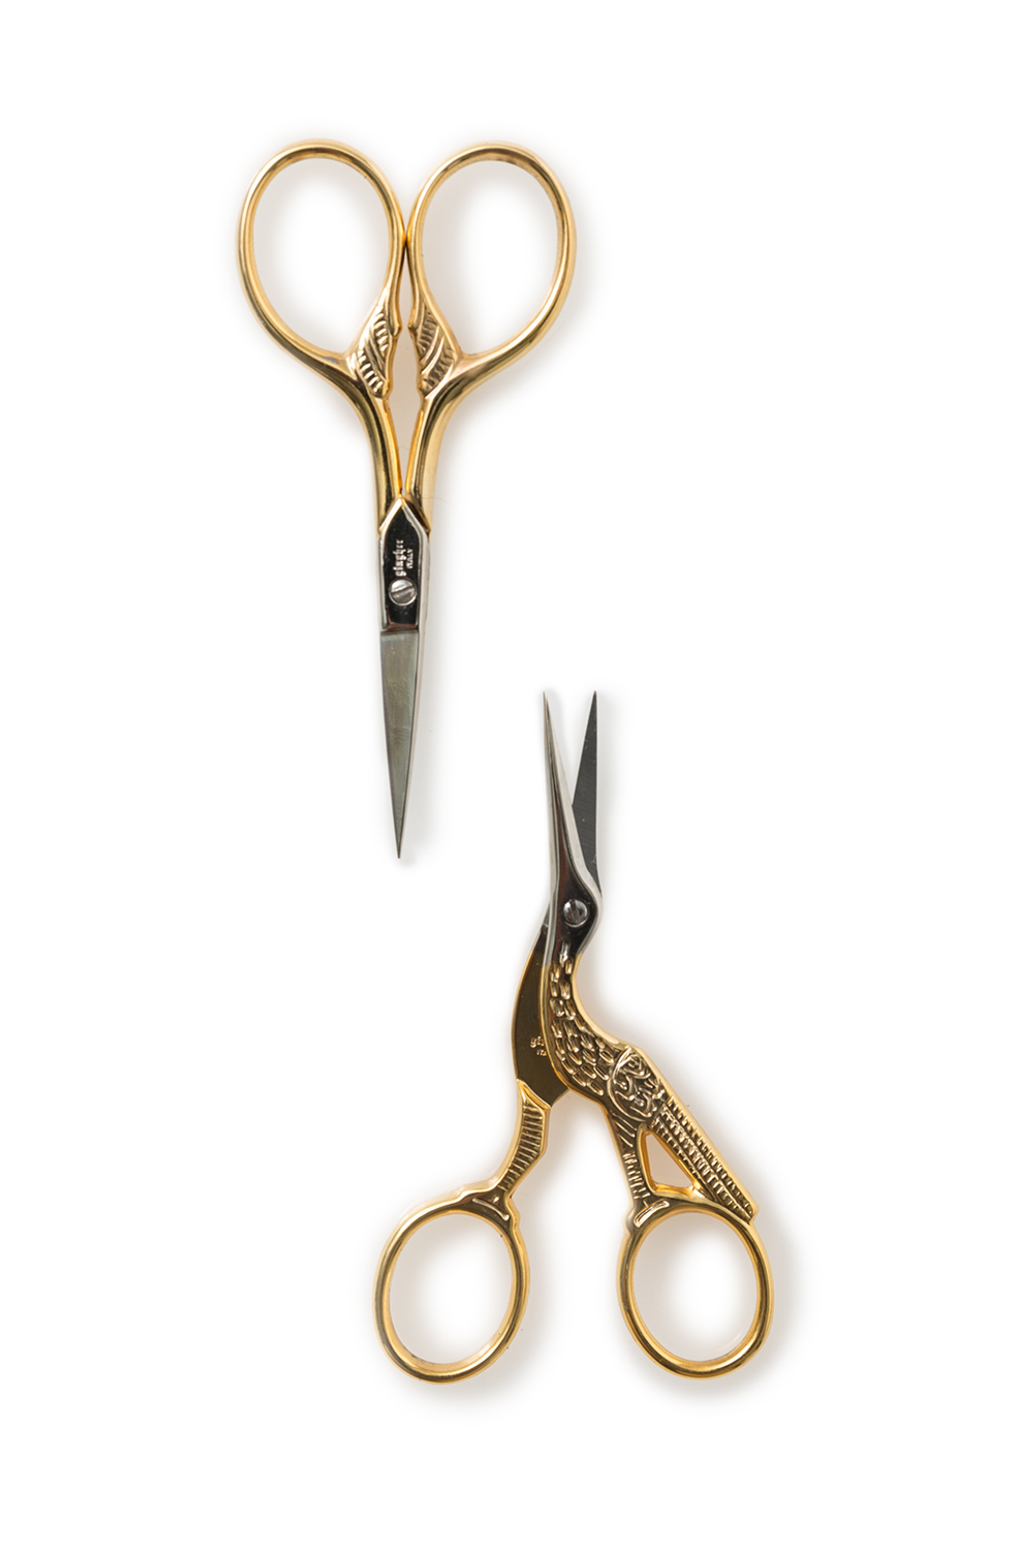 The school of making gingher gold handled embroidery scissors 1